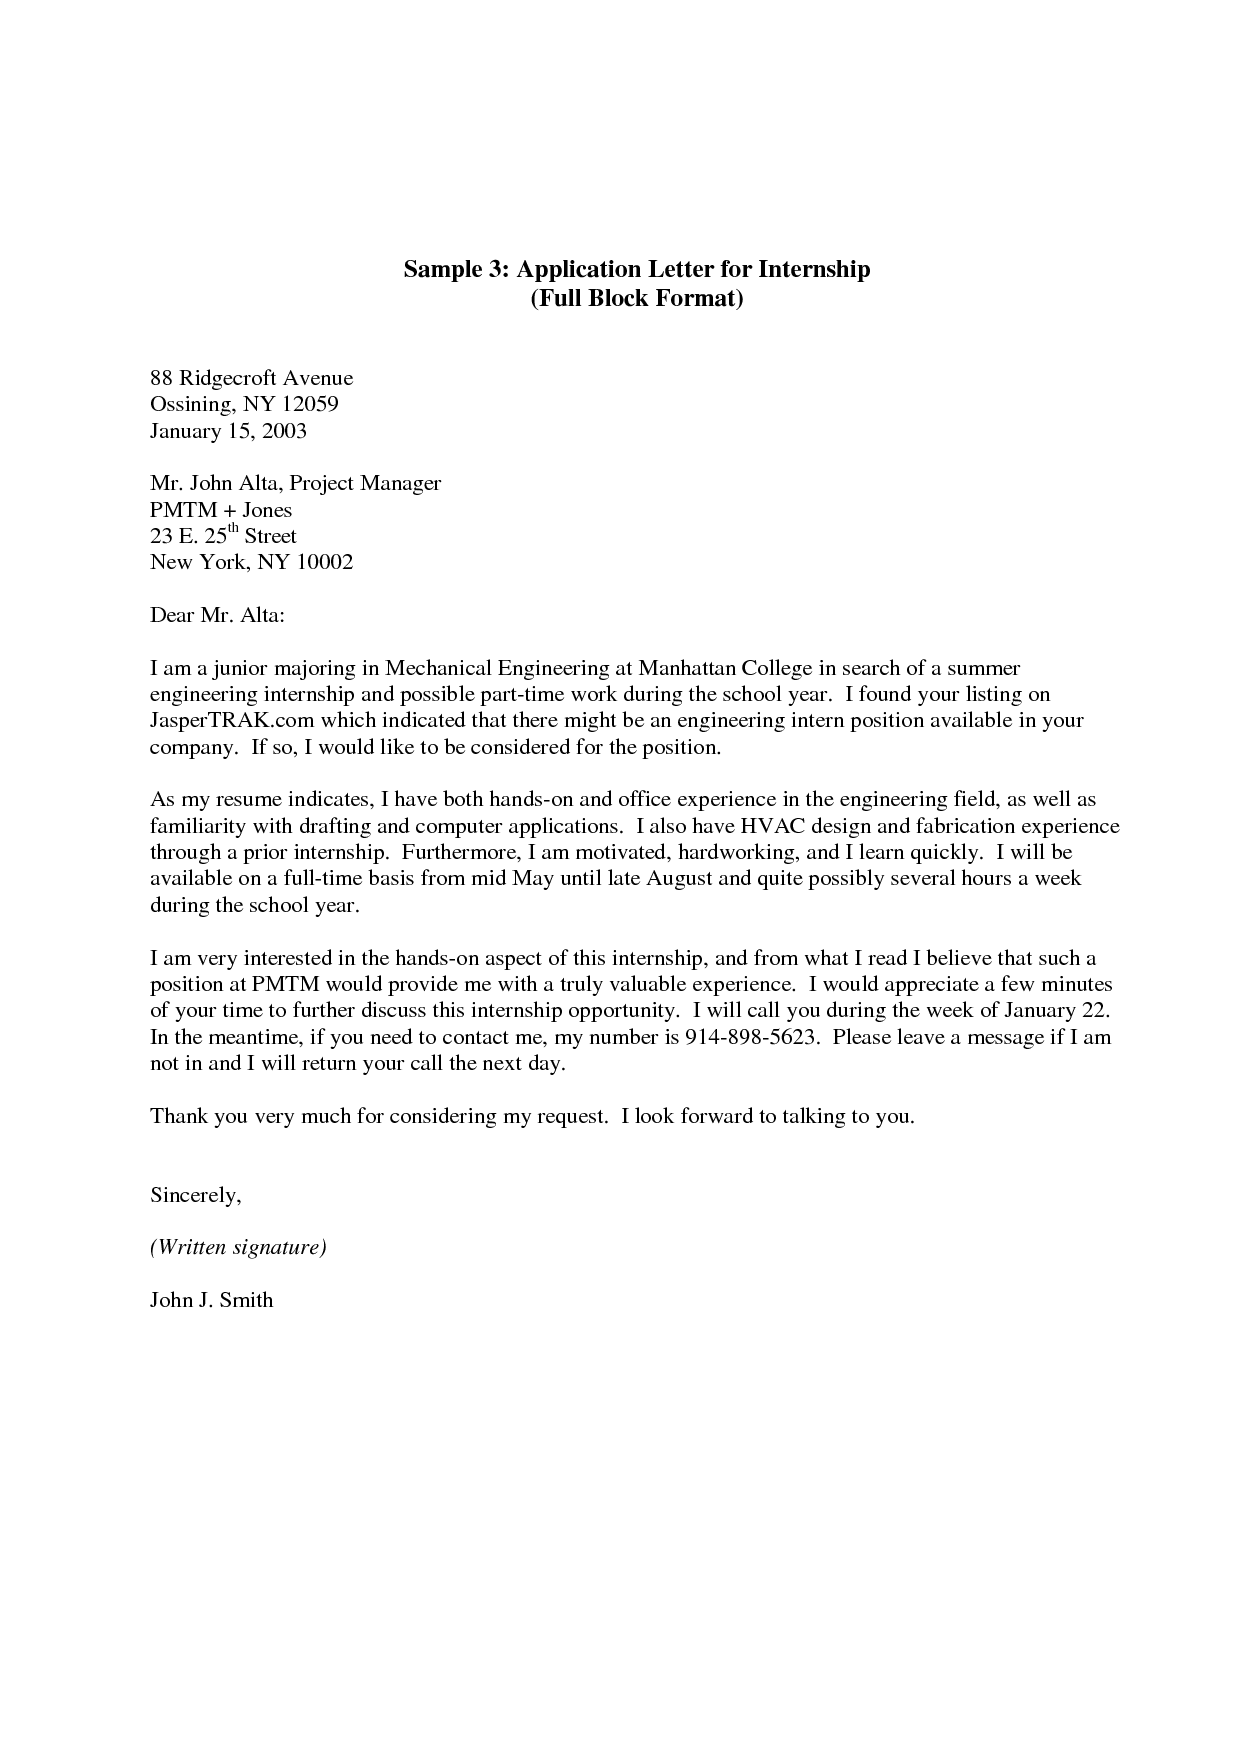 Cover Letters For Internships Internship Application Letter Here Is A Sample Cover Letter For